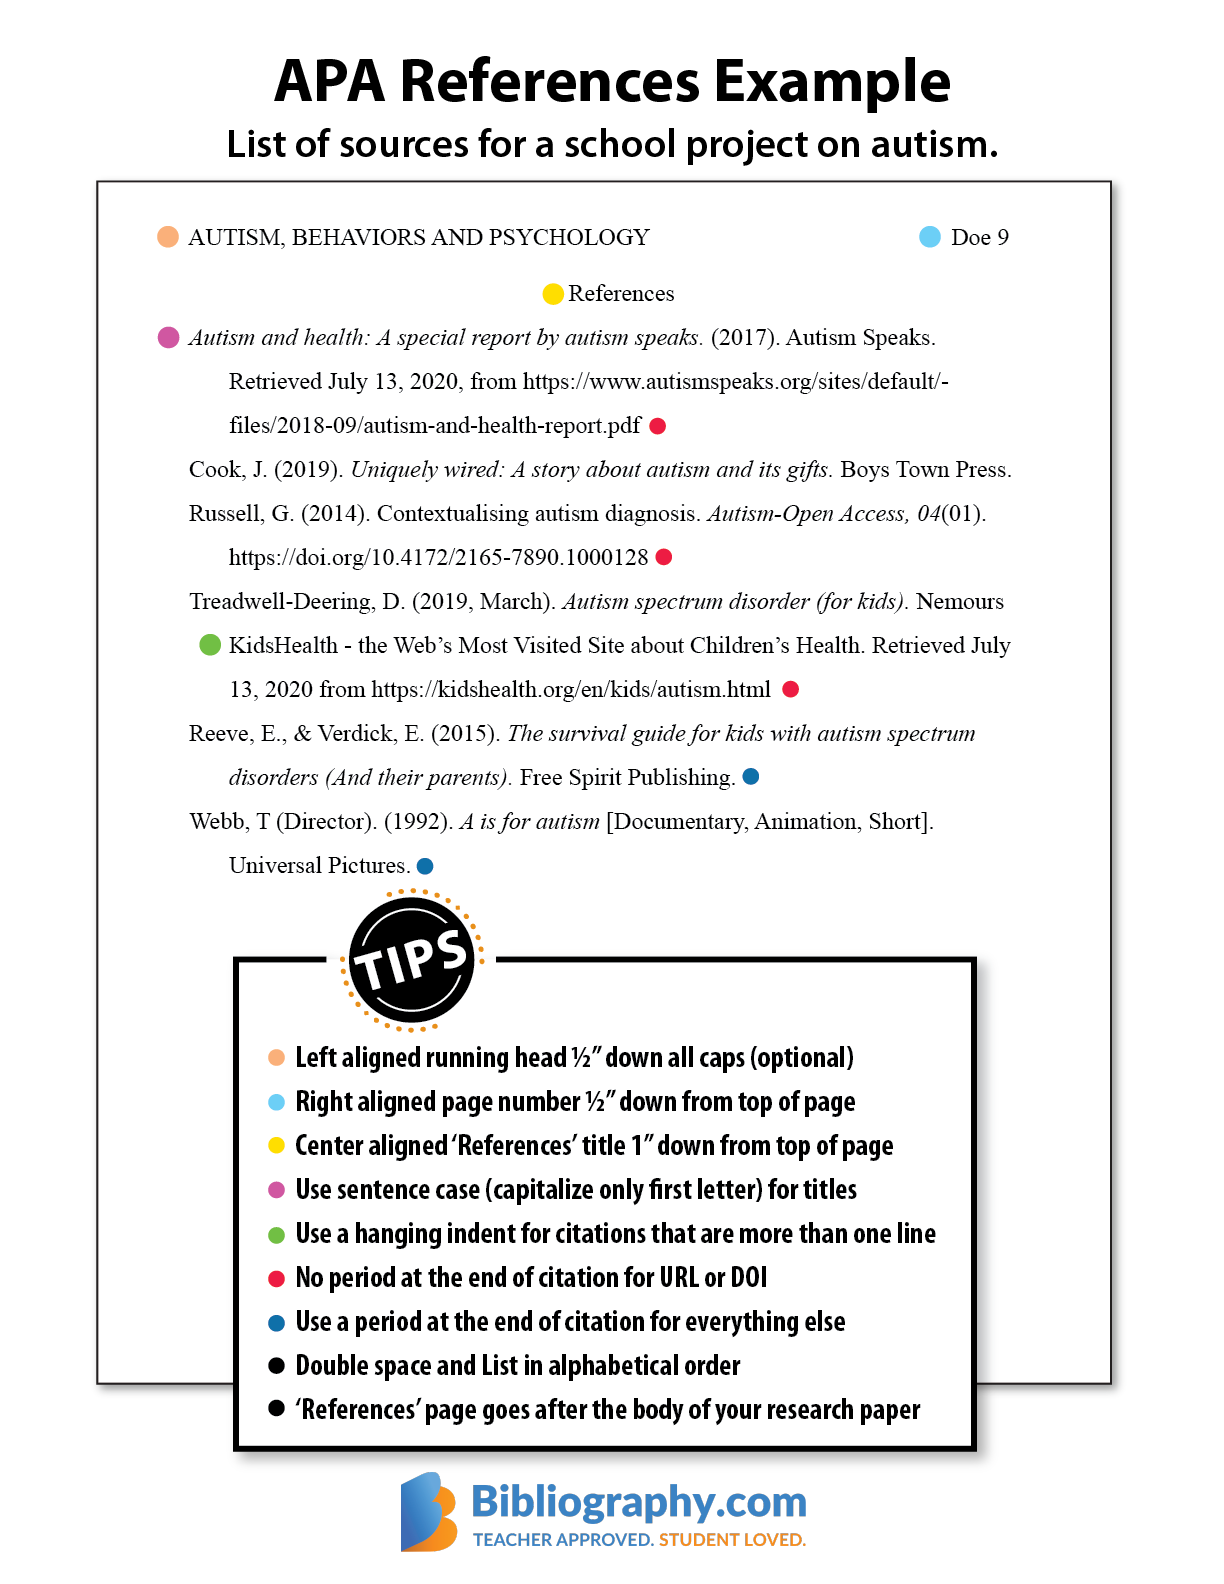 APA reference page tips